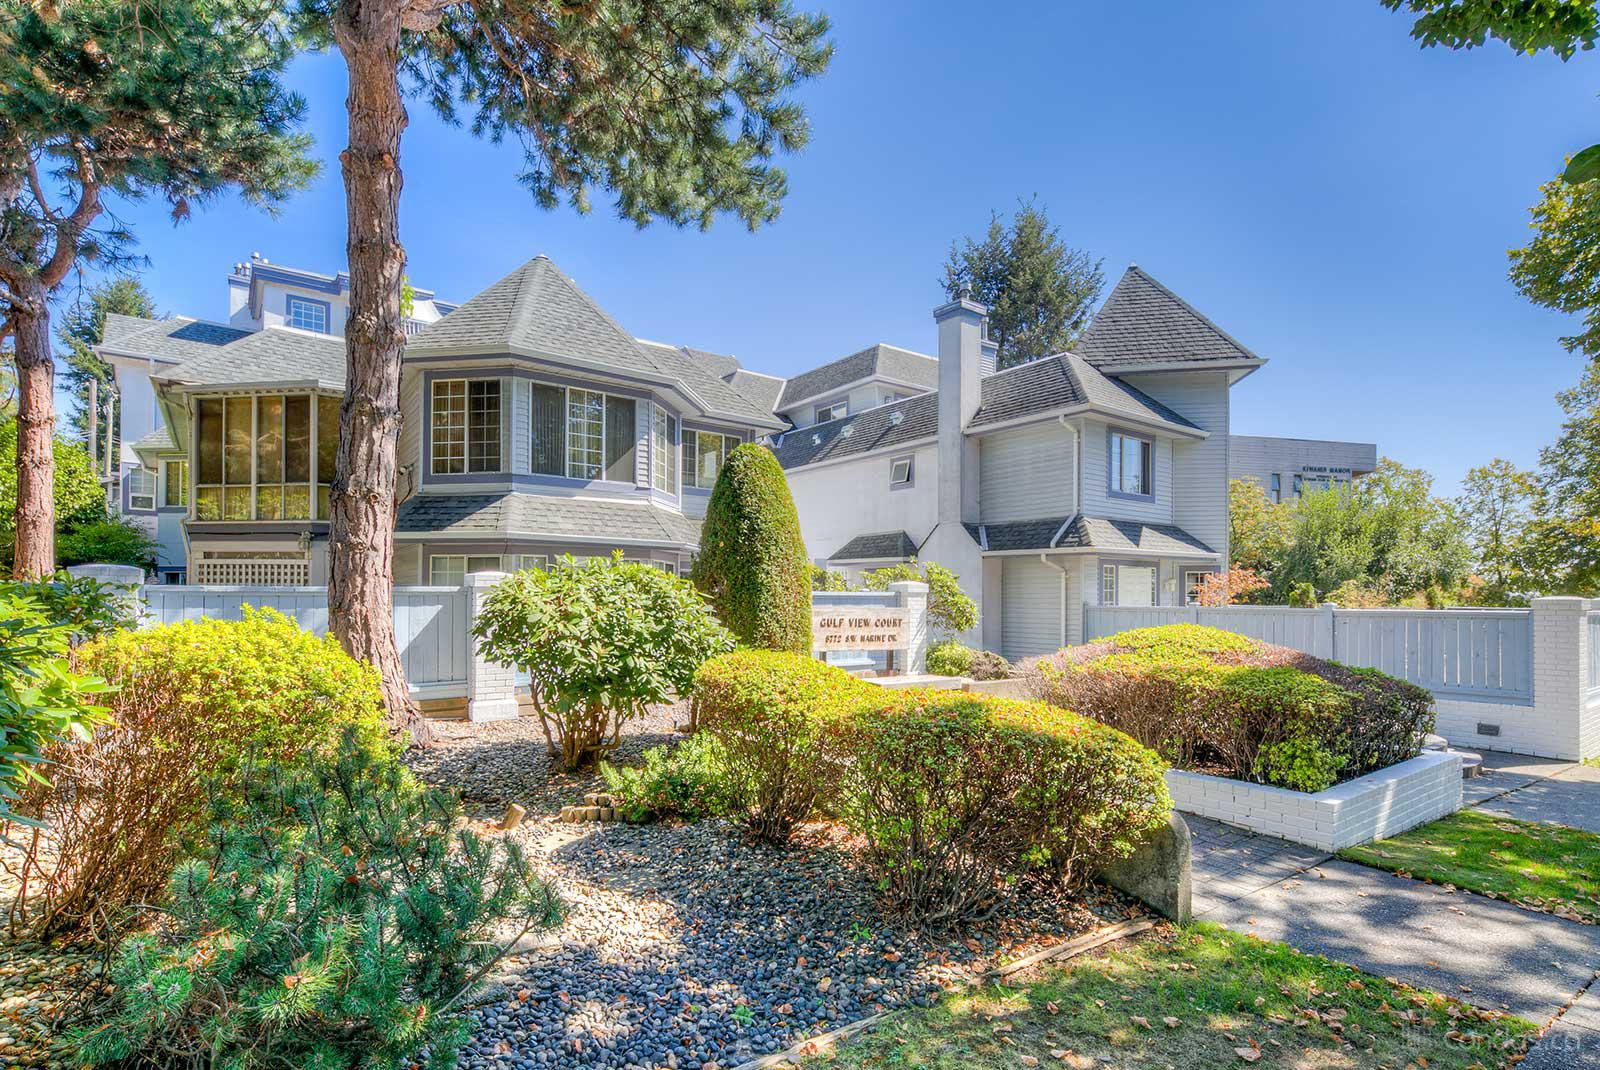 Gulf View Court at 8772 SW Marine Dr, Vancouver 0